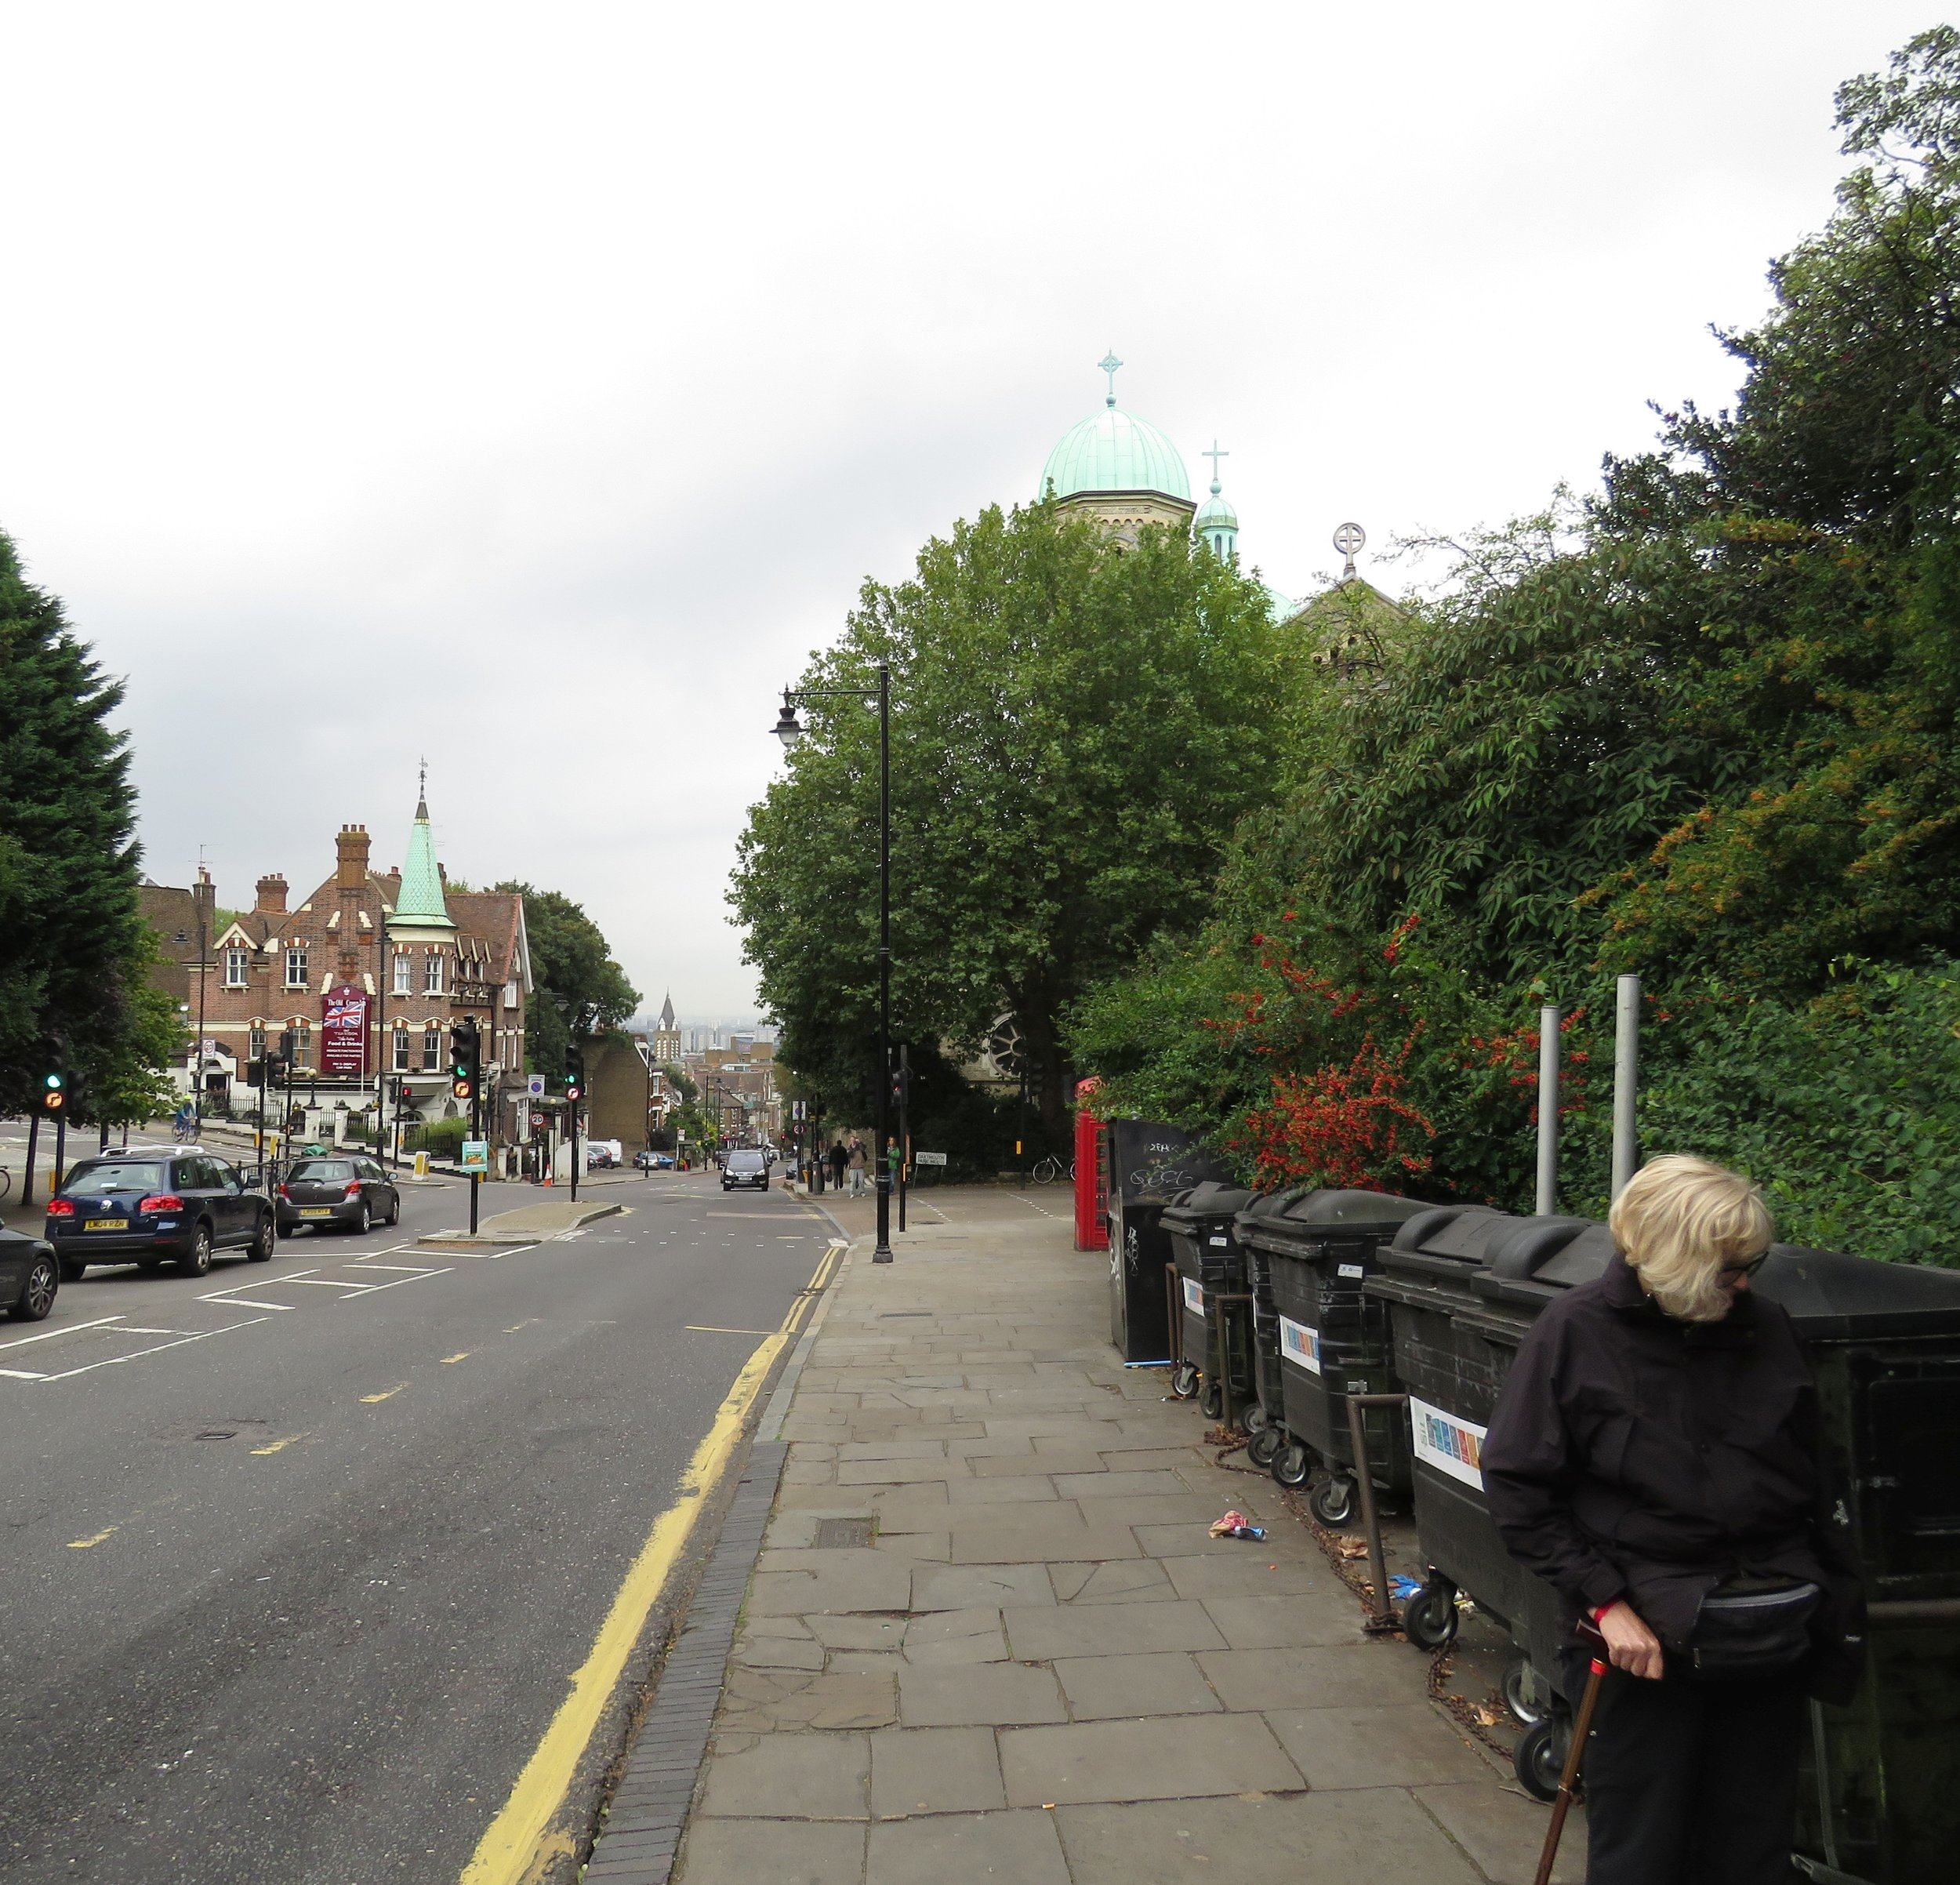 Walking up and up Highgate Street.  You can barely see the City of London in the distance at the bottom of the street.